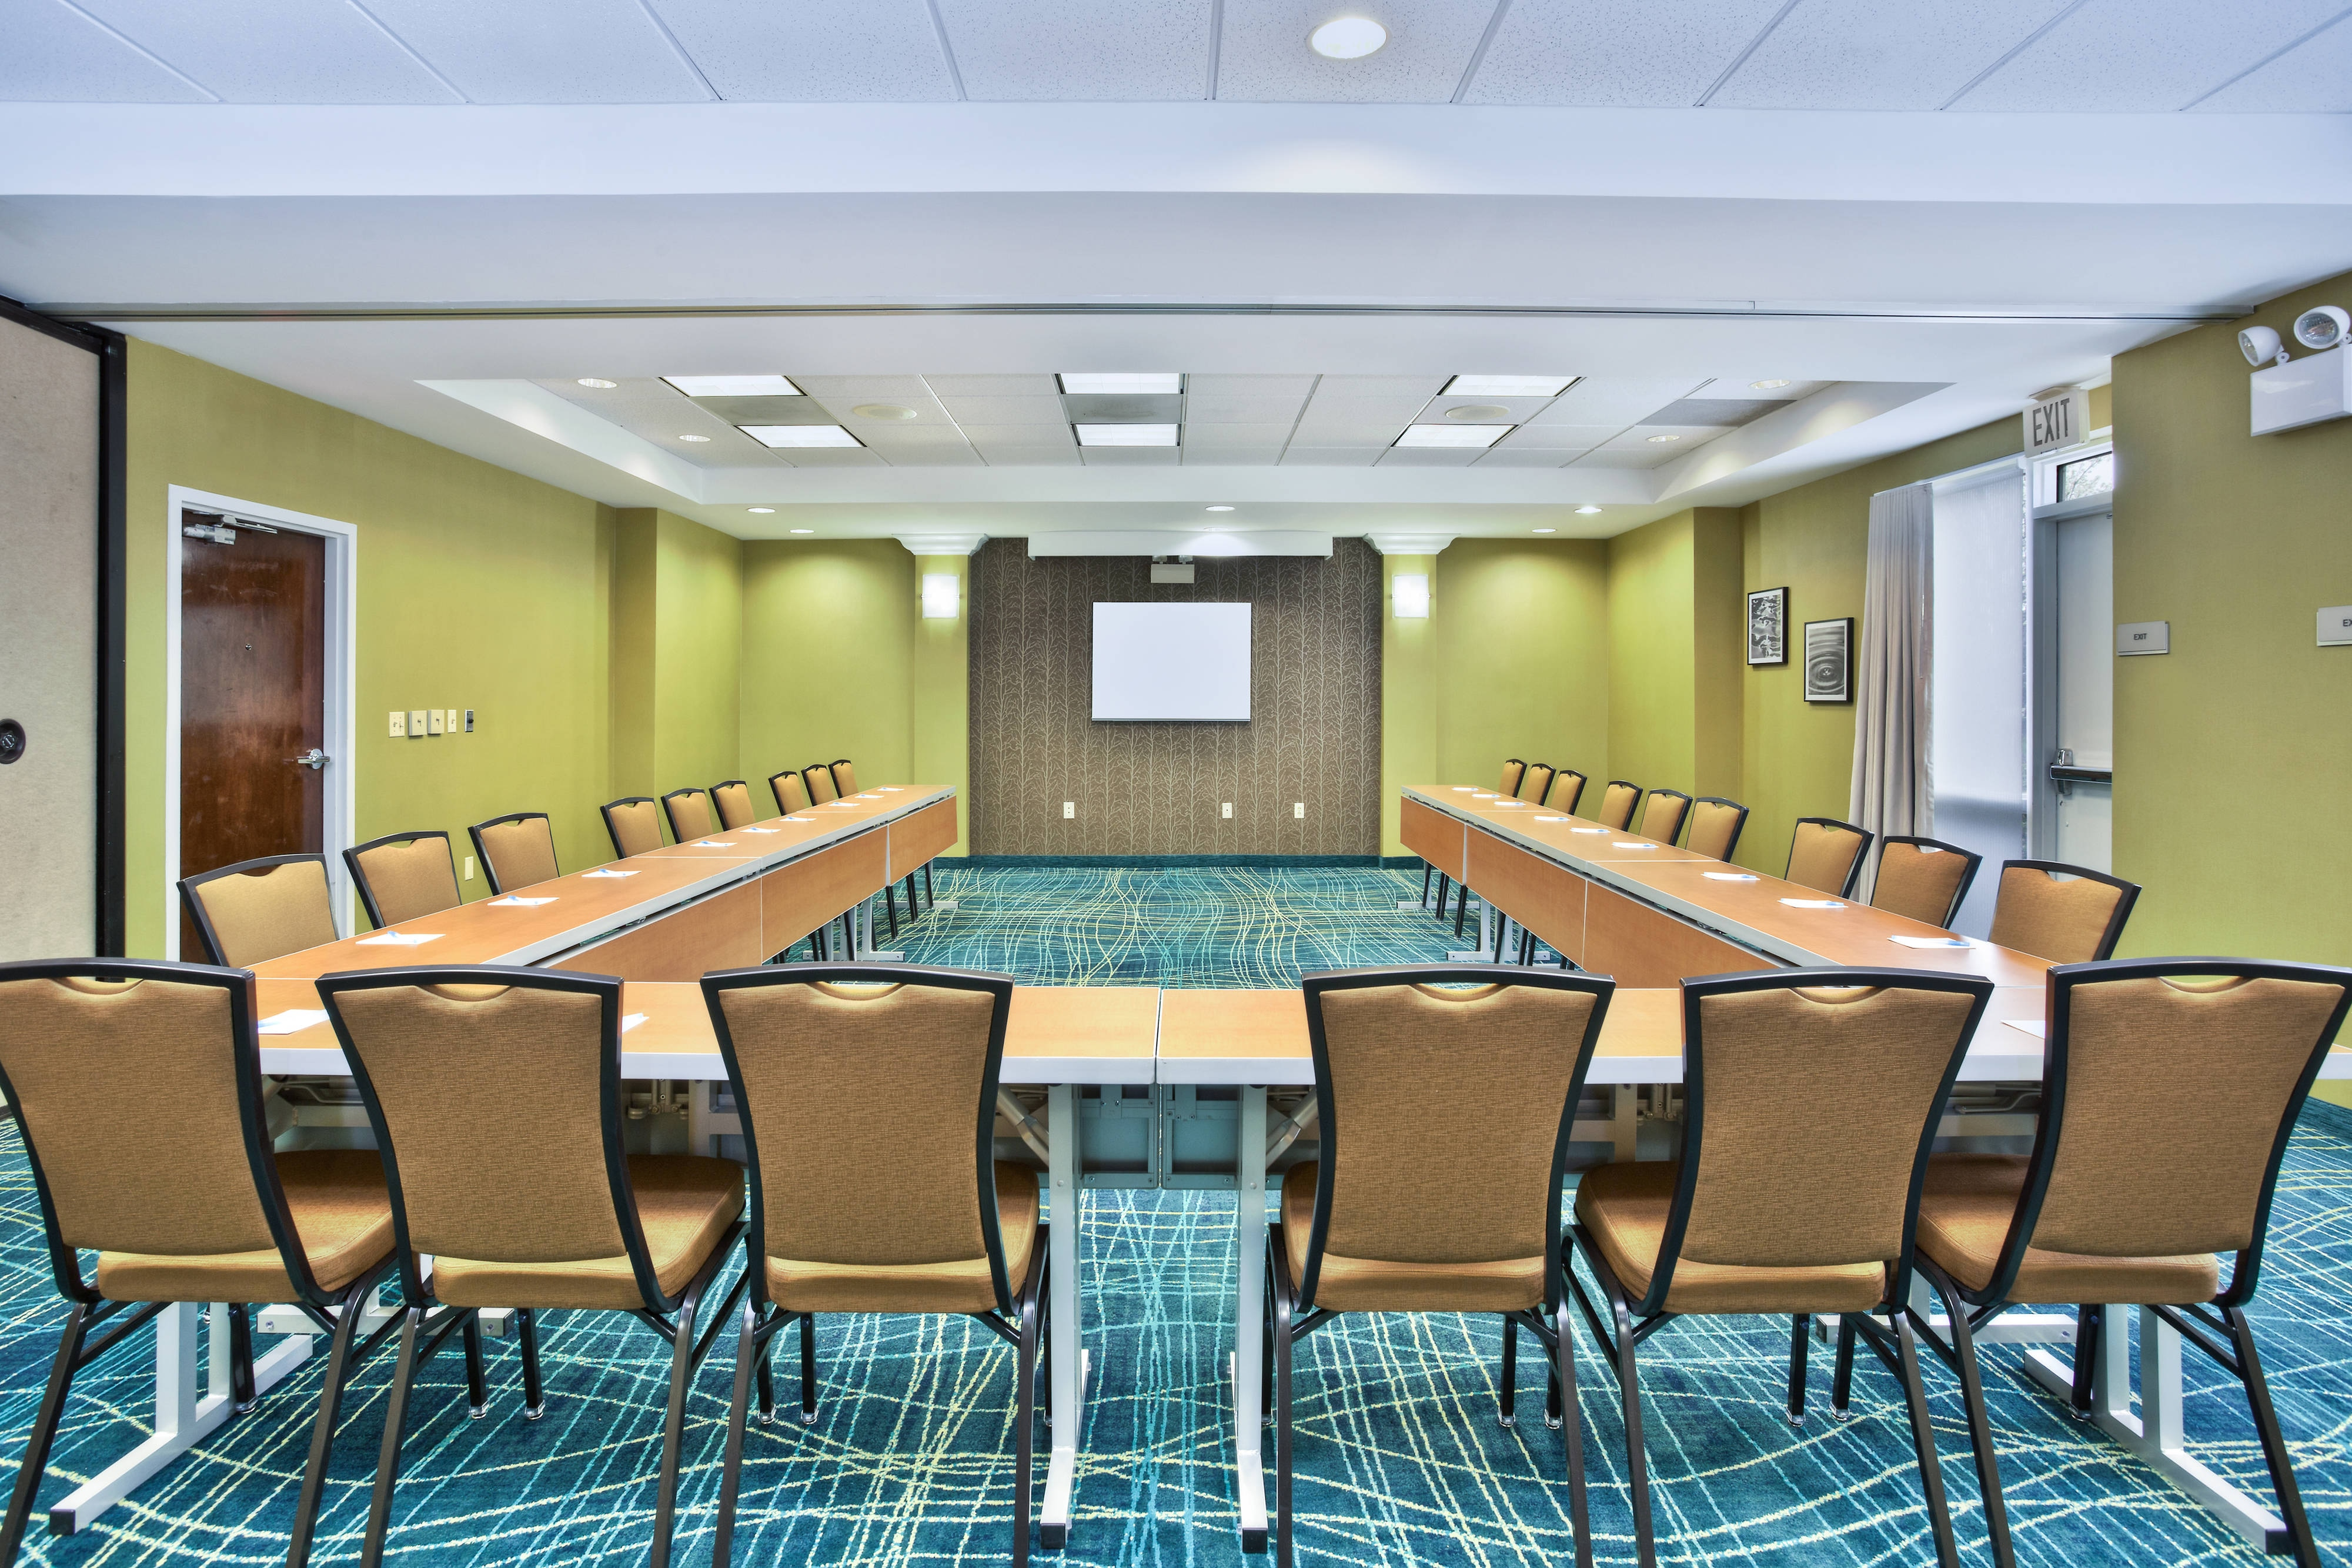 SpringHill Suites Chicago Southwest at Burr Ridge/Hinsdale Meeting Room U-shape Setup